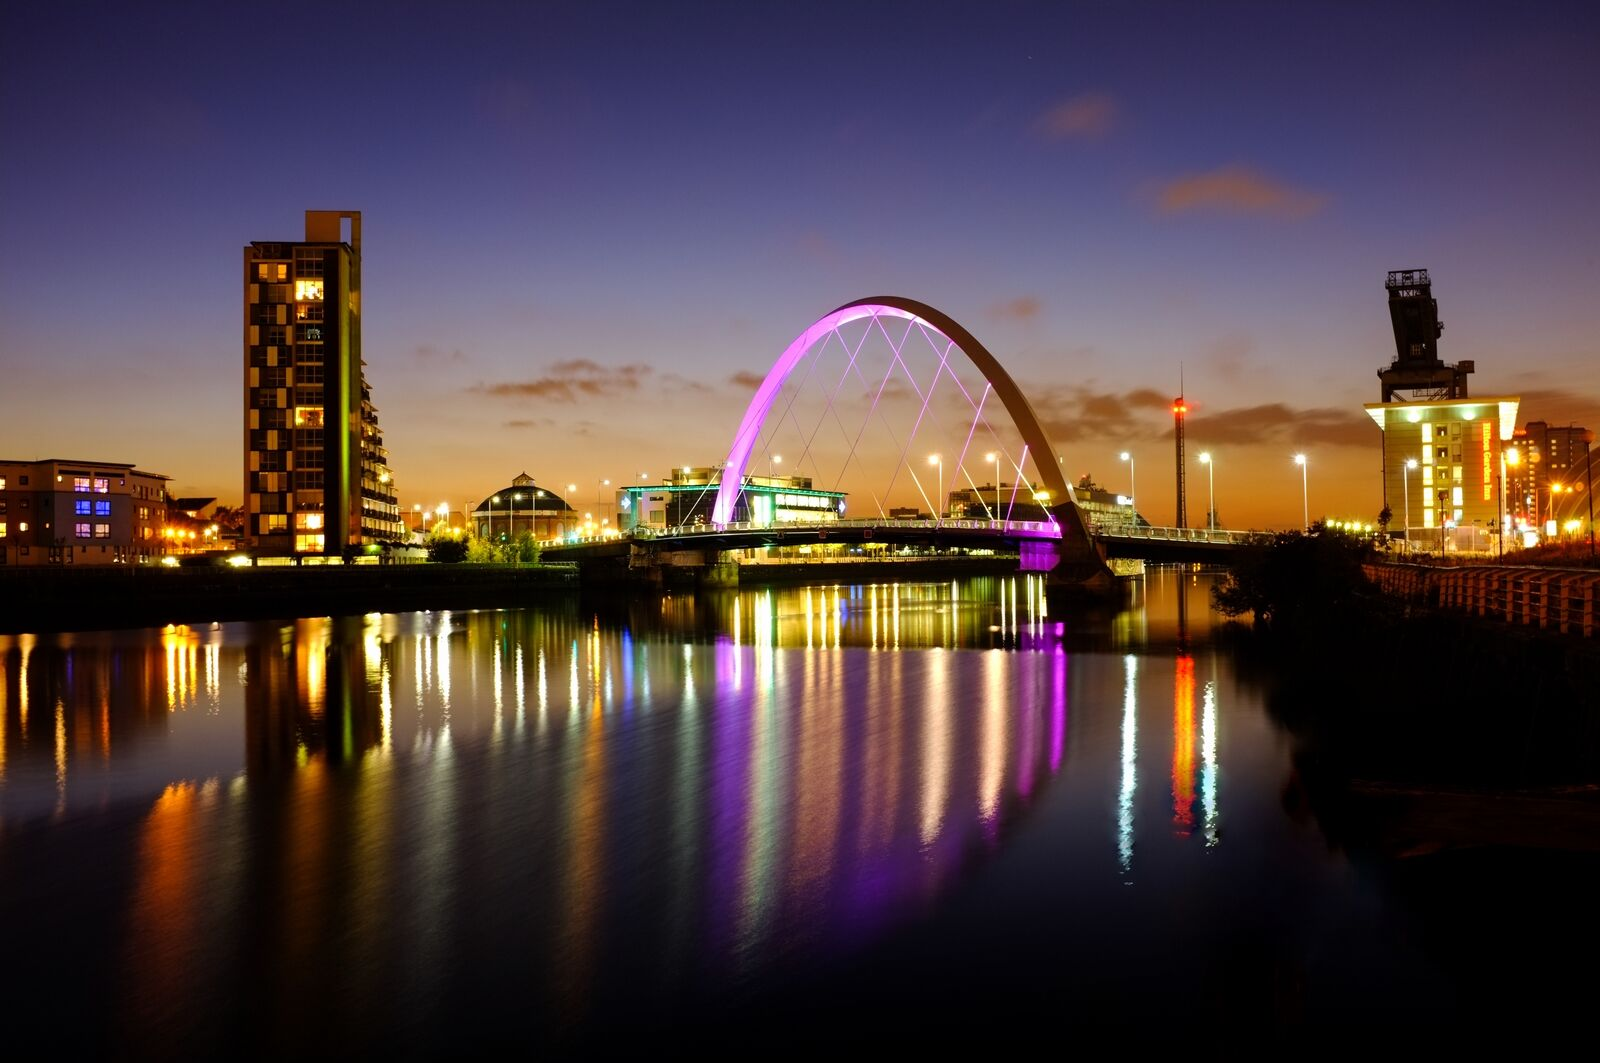 The Clyde Arc at sunset